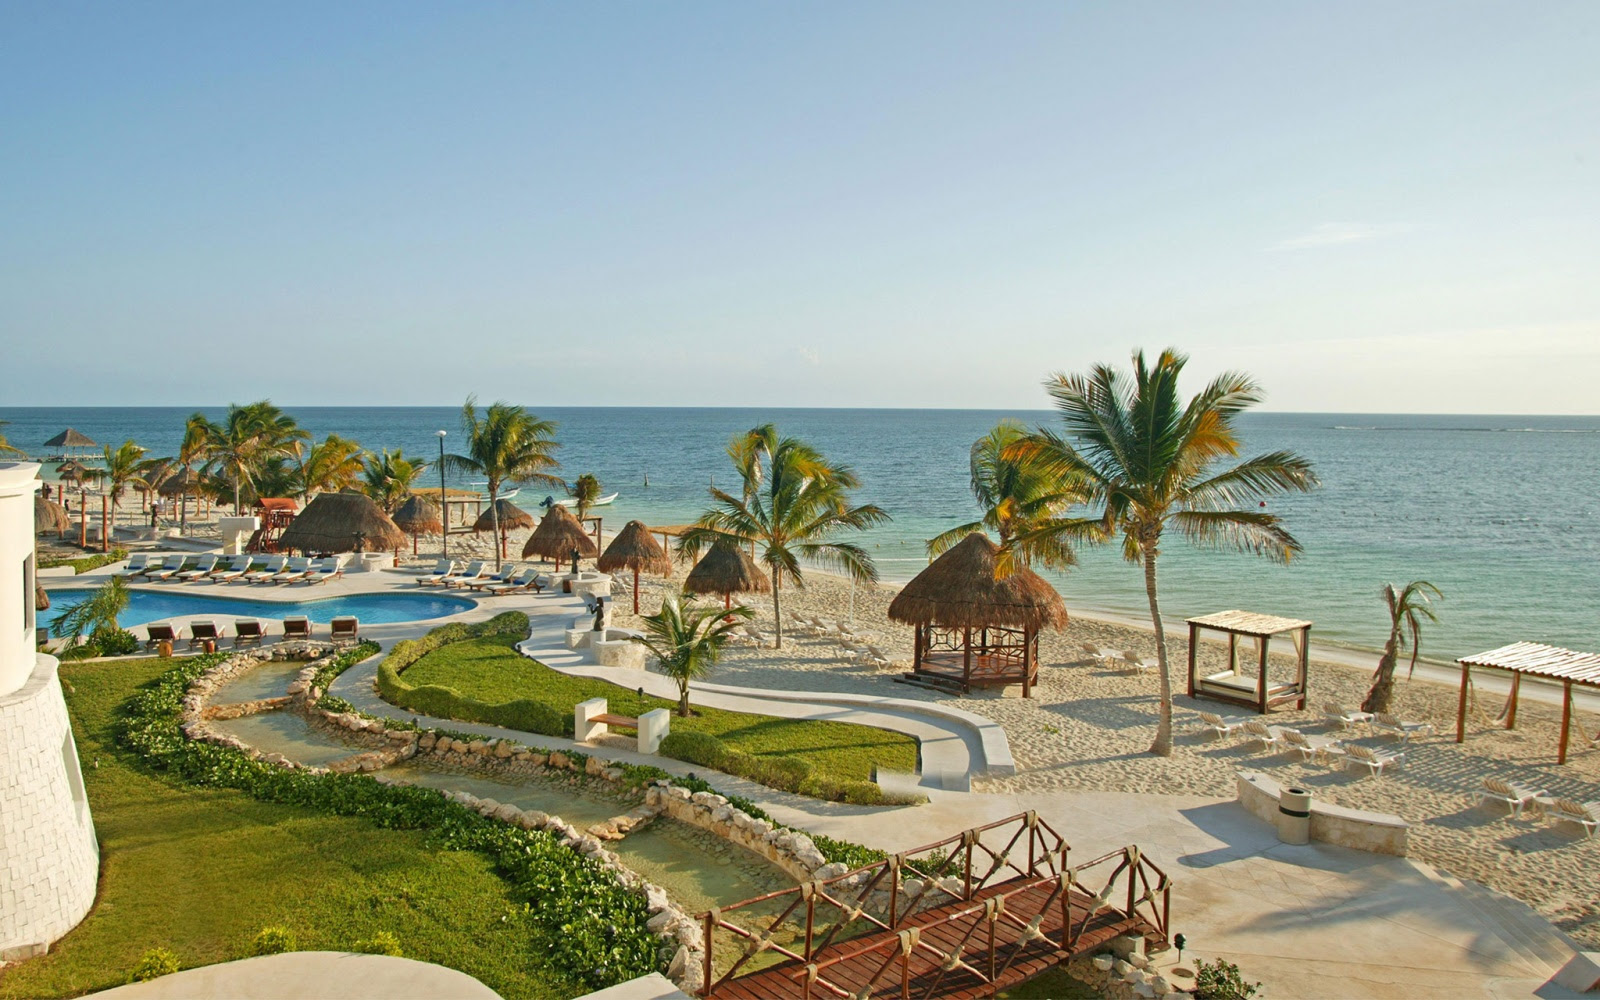 The Best Affordable AllInclusive Resorts for Vacation